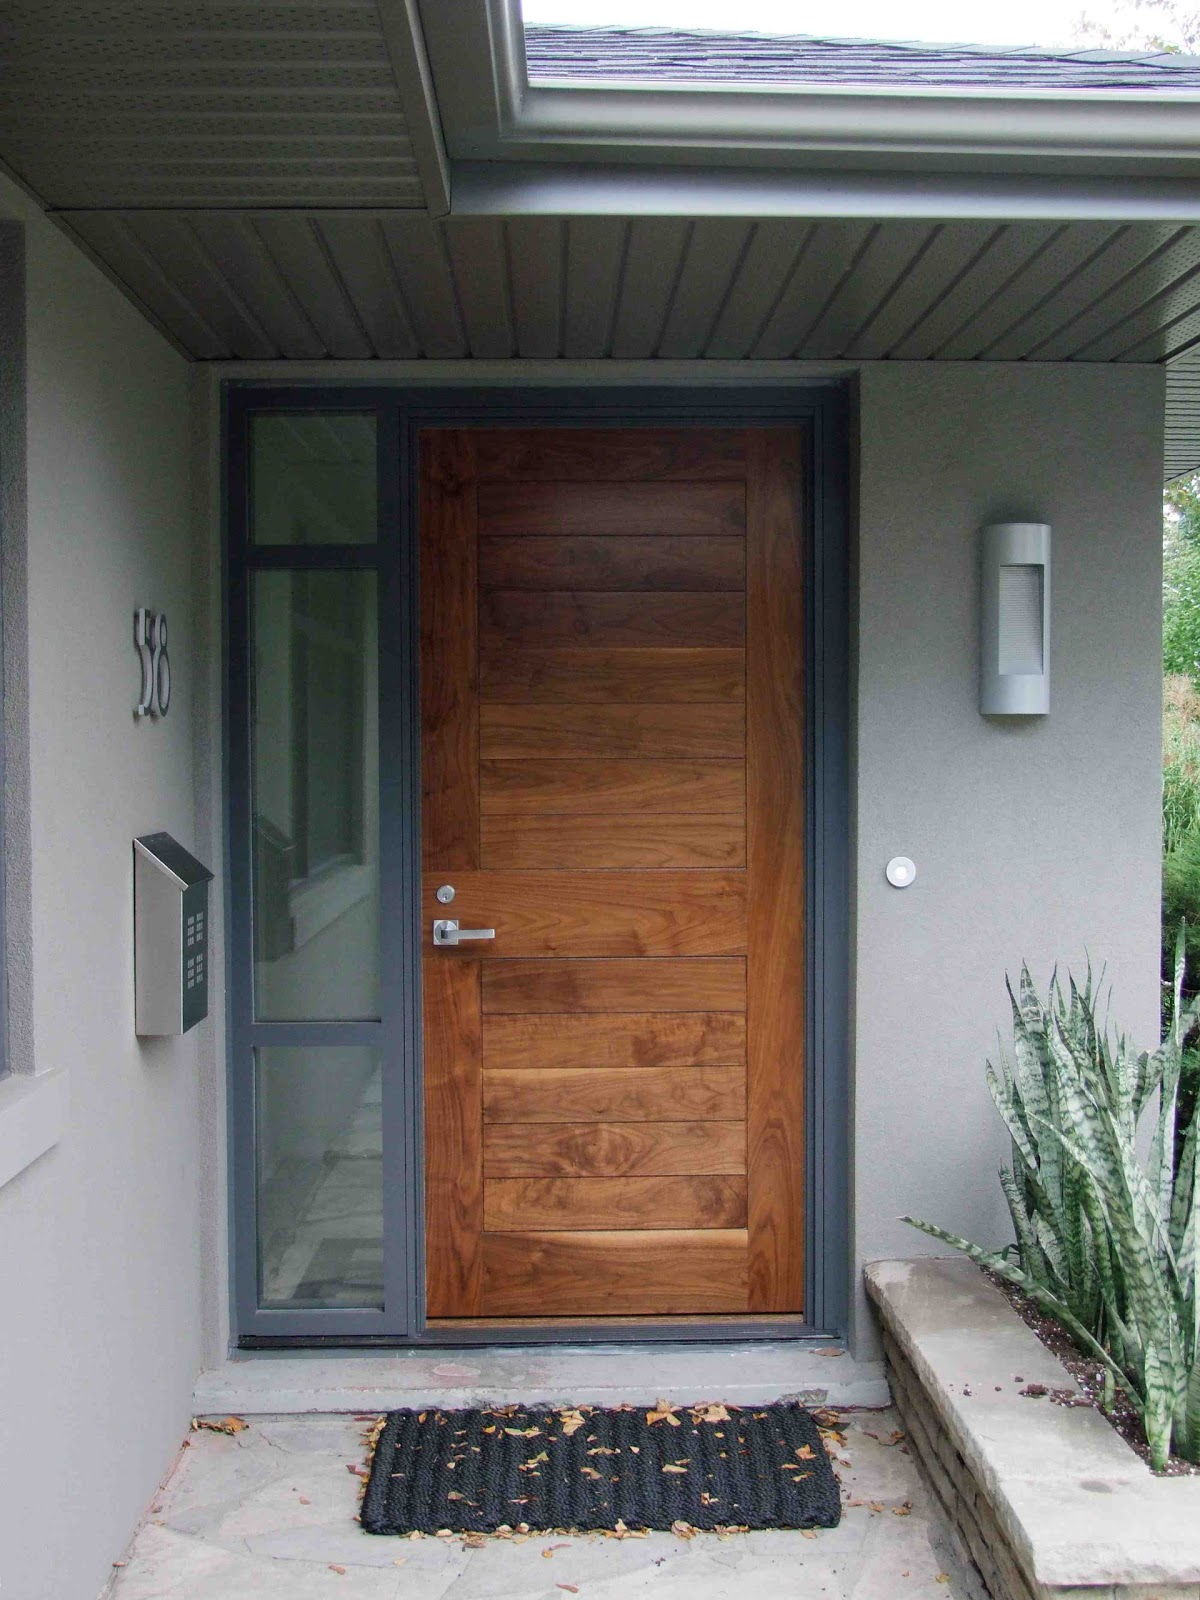 Creed 70 39 s bungalow makes a modern impression for Front door with top window